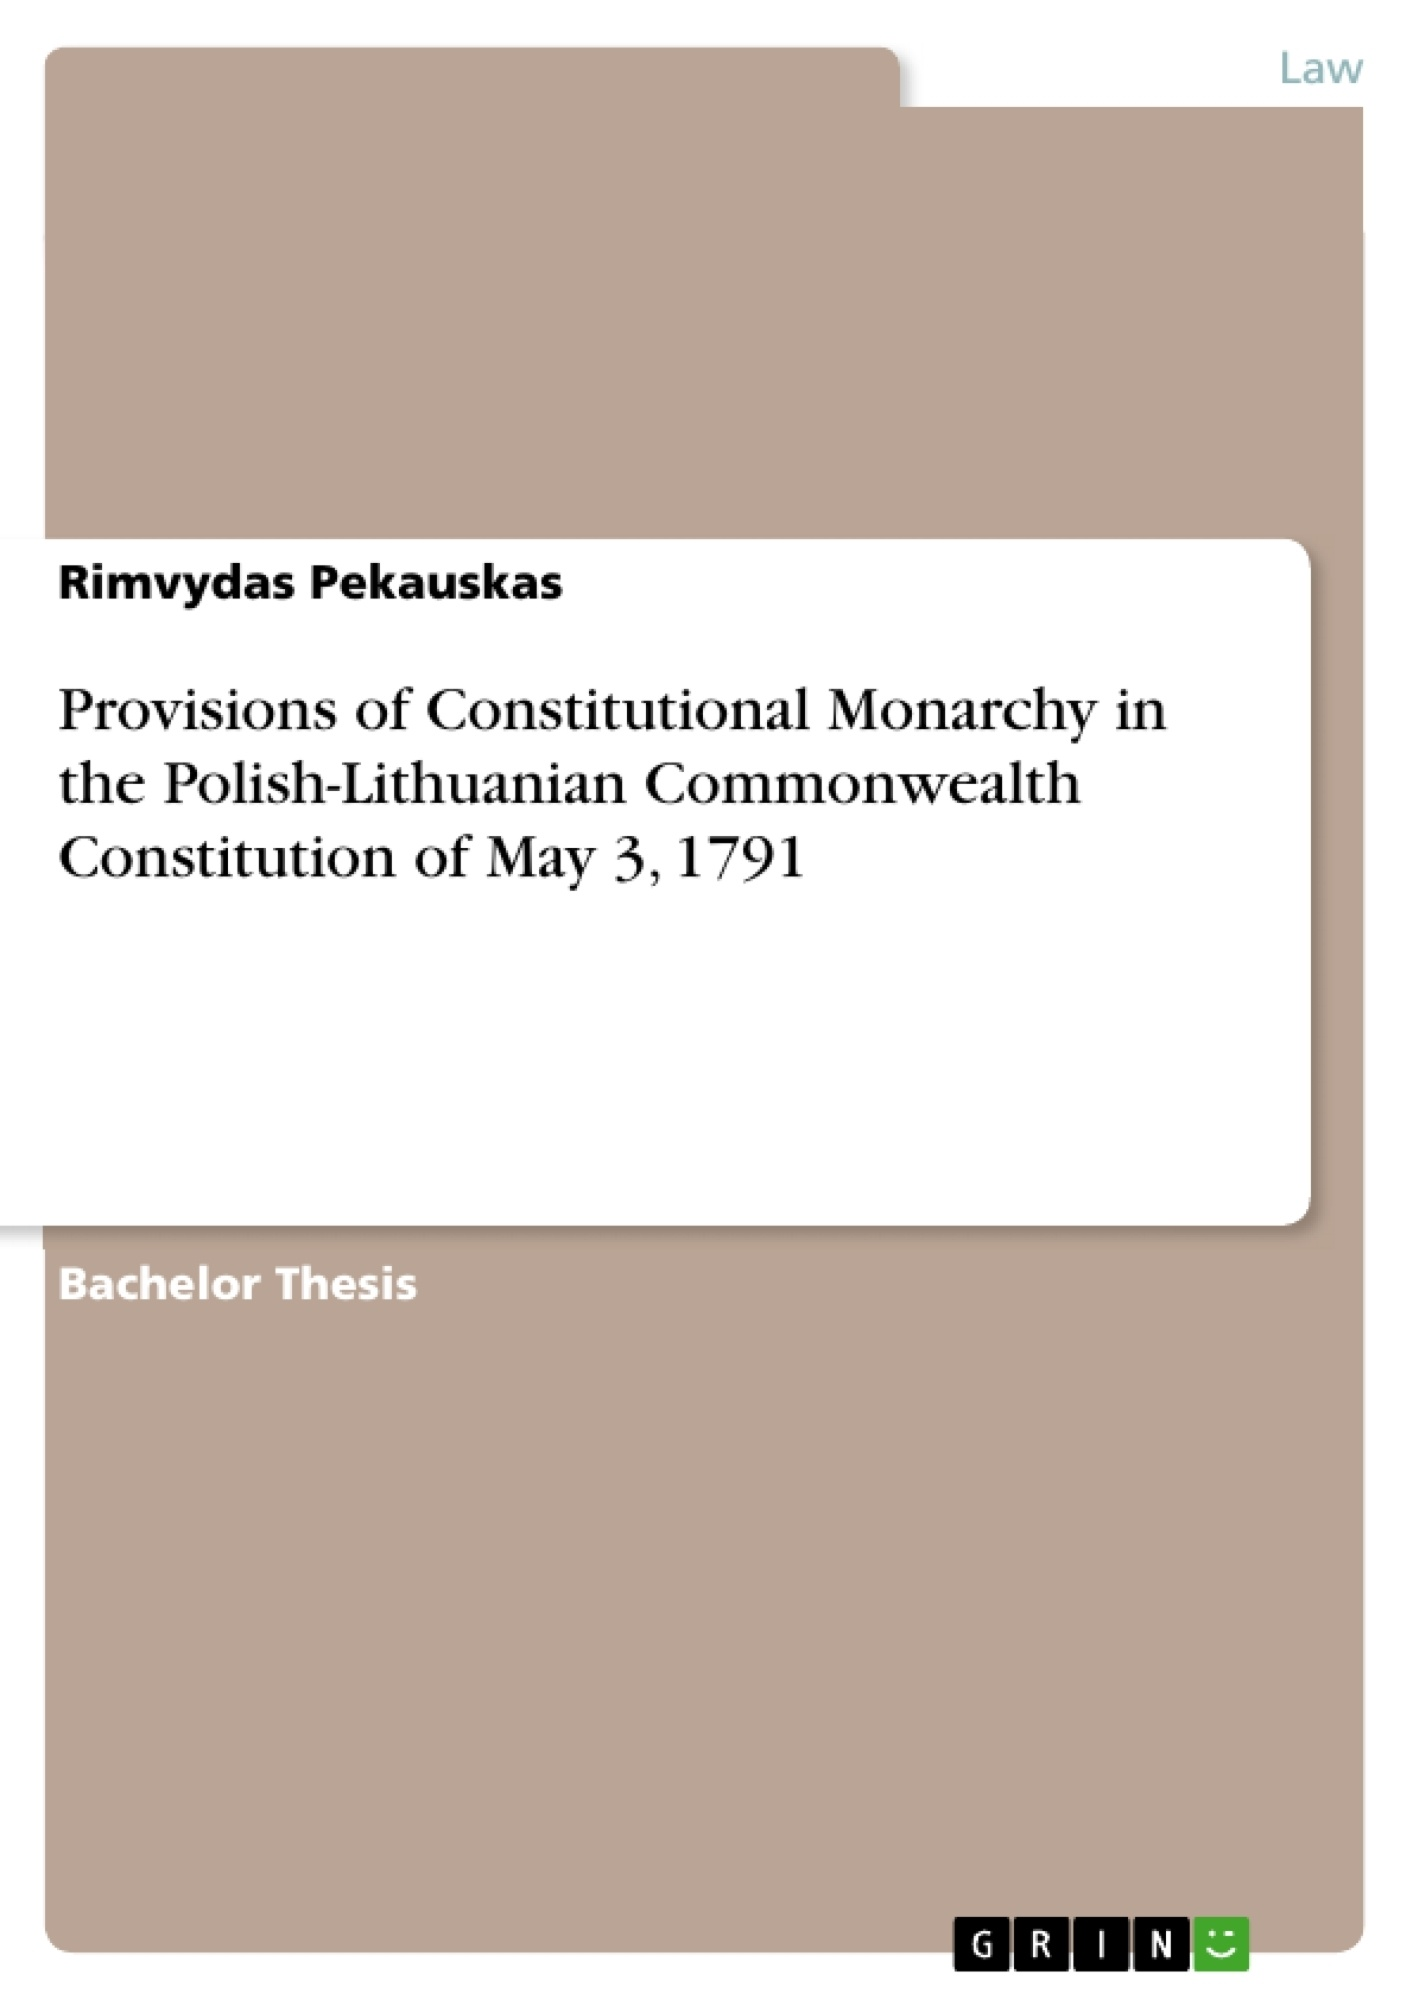 Title: Provisions of Constitutional Monarchy in the Polish-Lithuanian Commonwealth Constitution of May 3, 1791